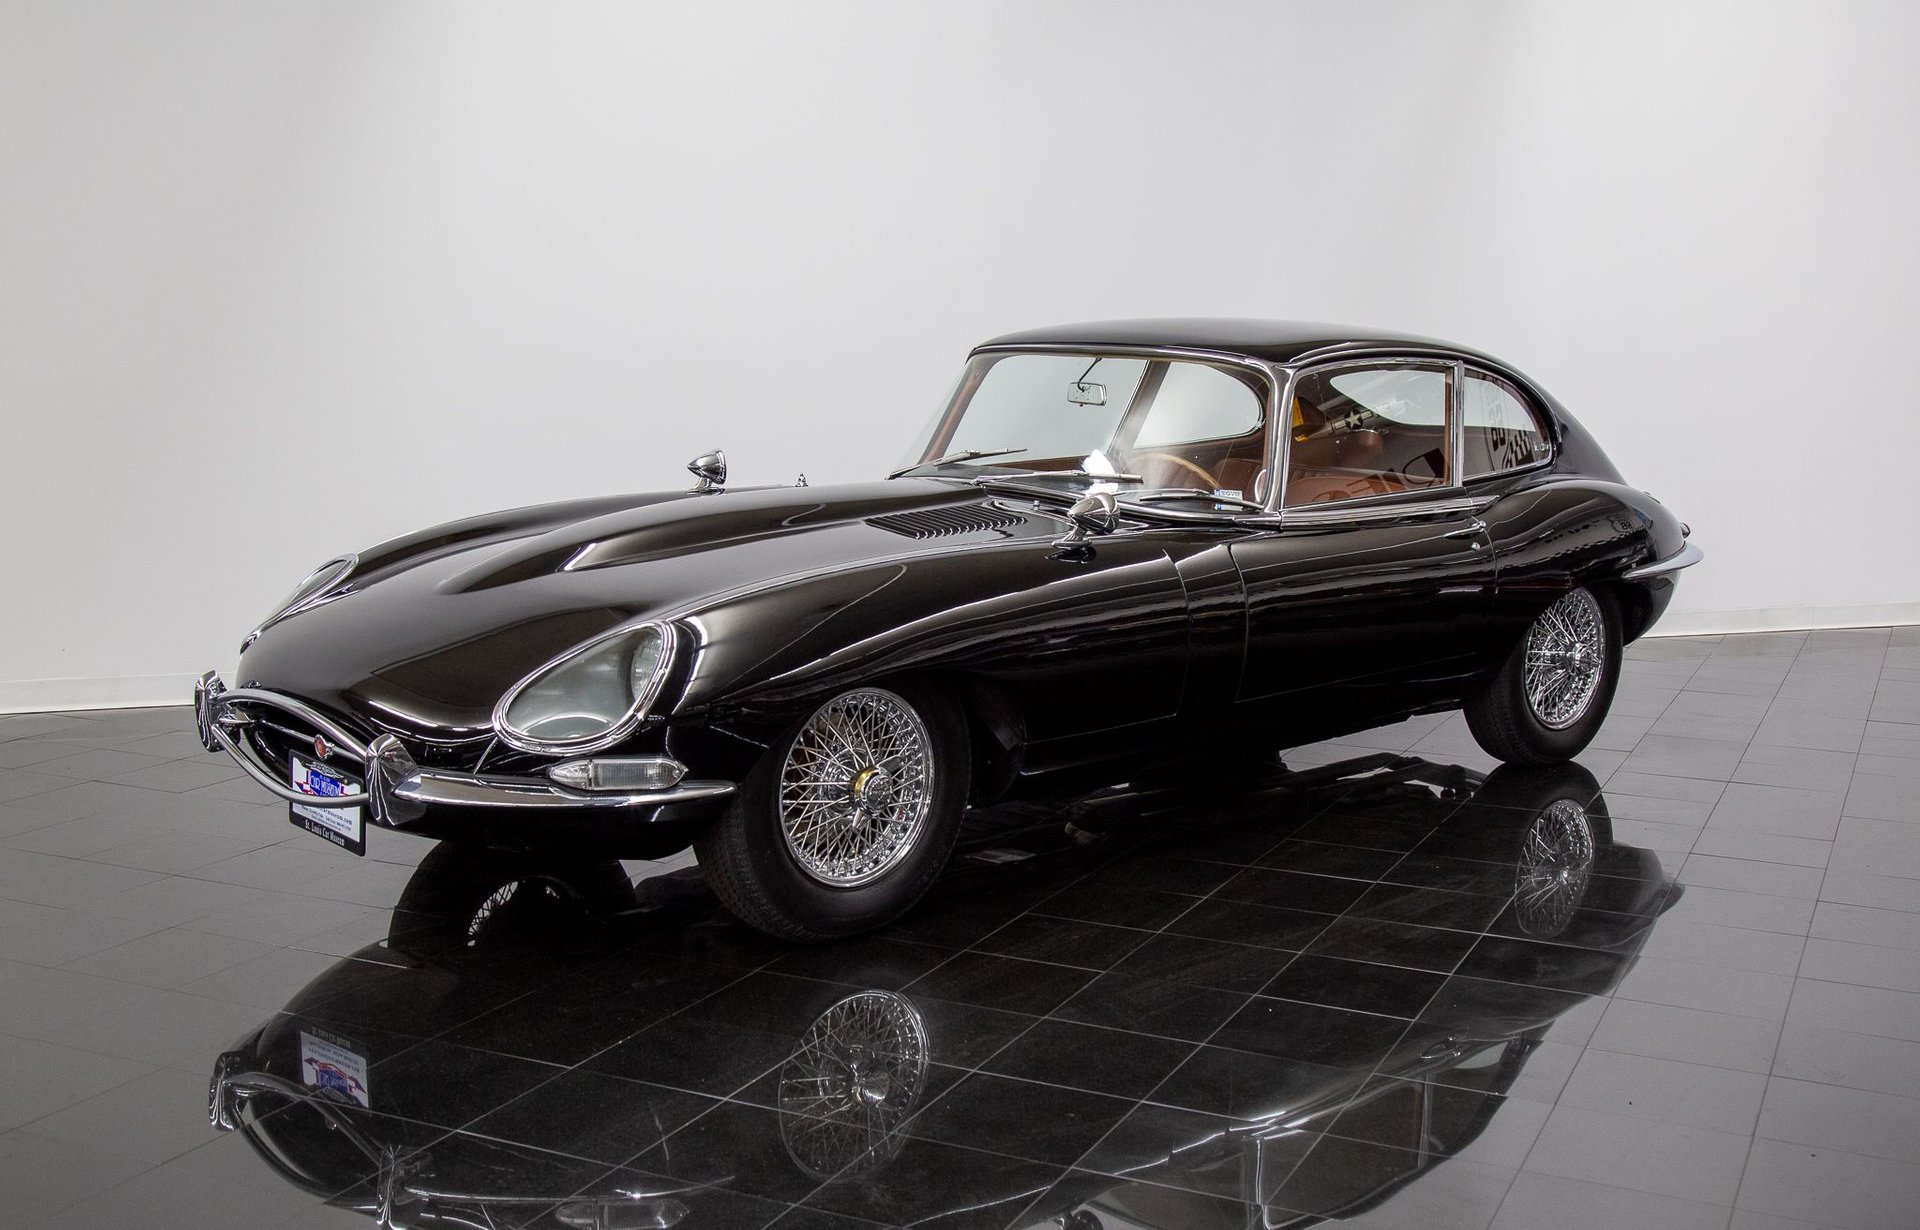 1967 Jaguar XKE Series I E-Type 2+2 Coupe for sale